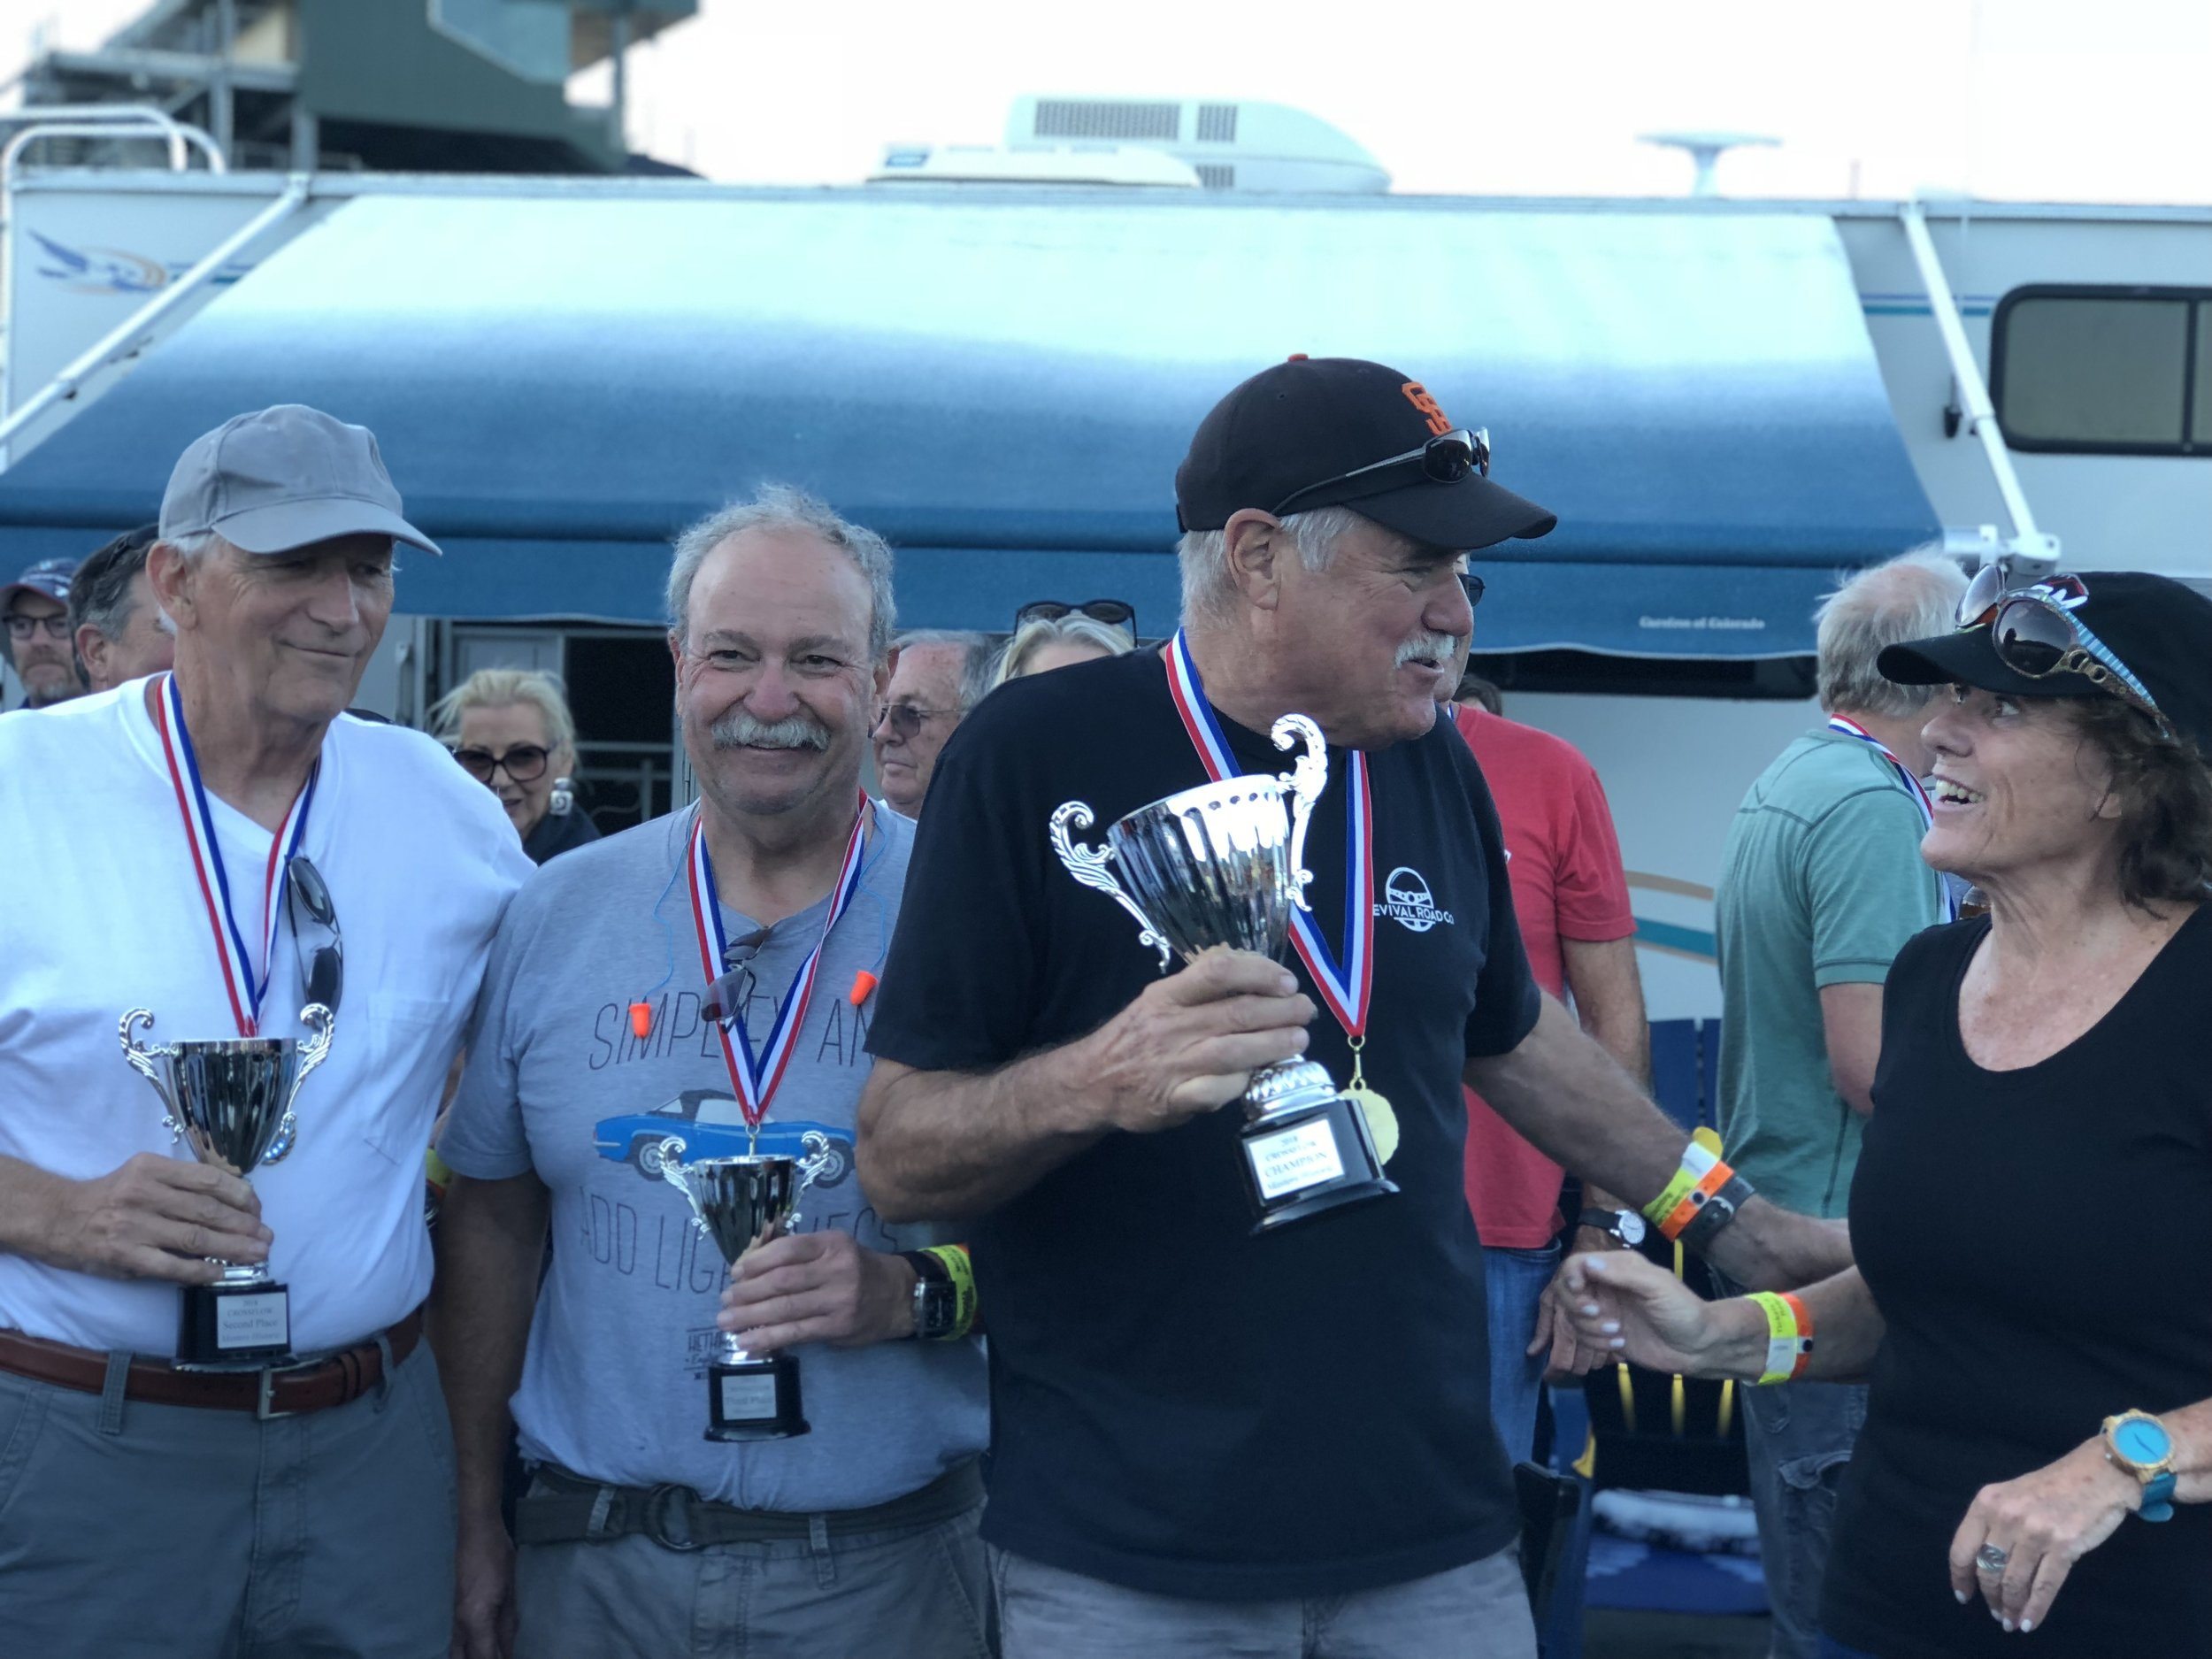 Masters podium presented by Lynn St. James. Champ Dave Zurlinden (far right) Tom Duncan (far left) and Dan Wise (Center)